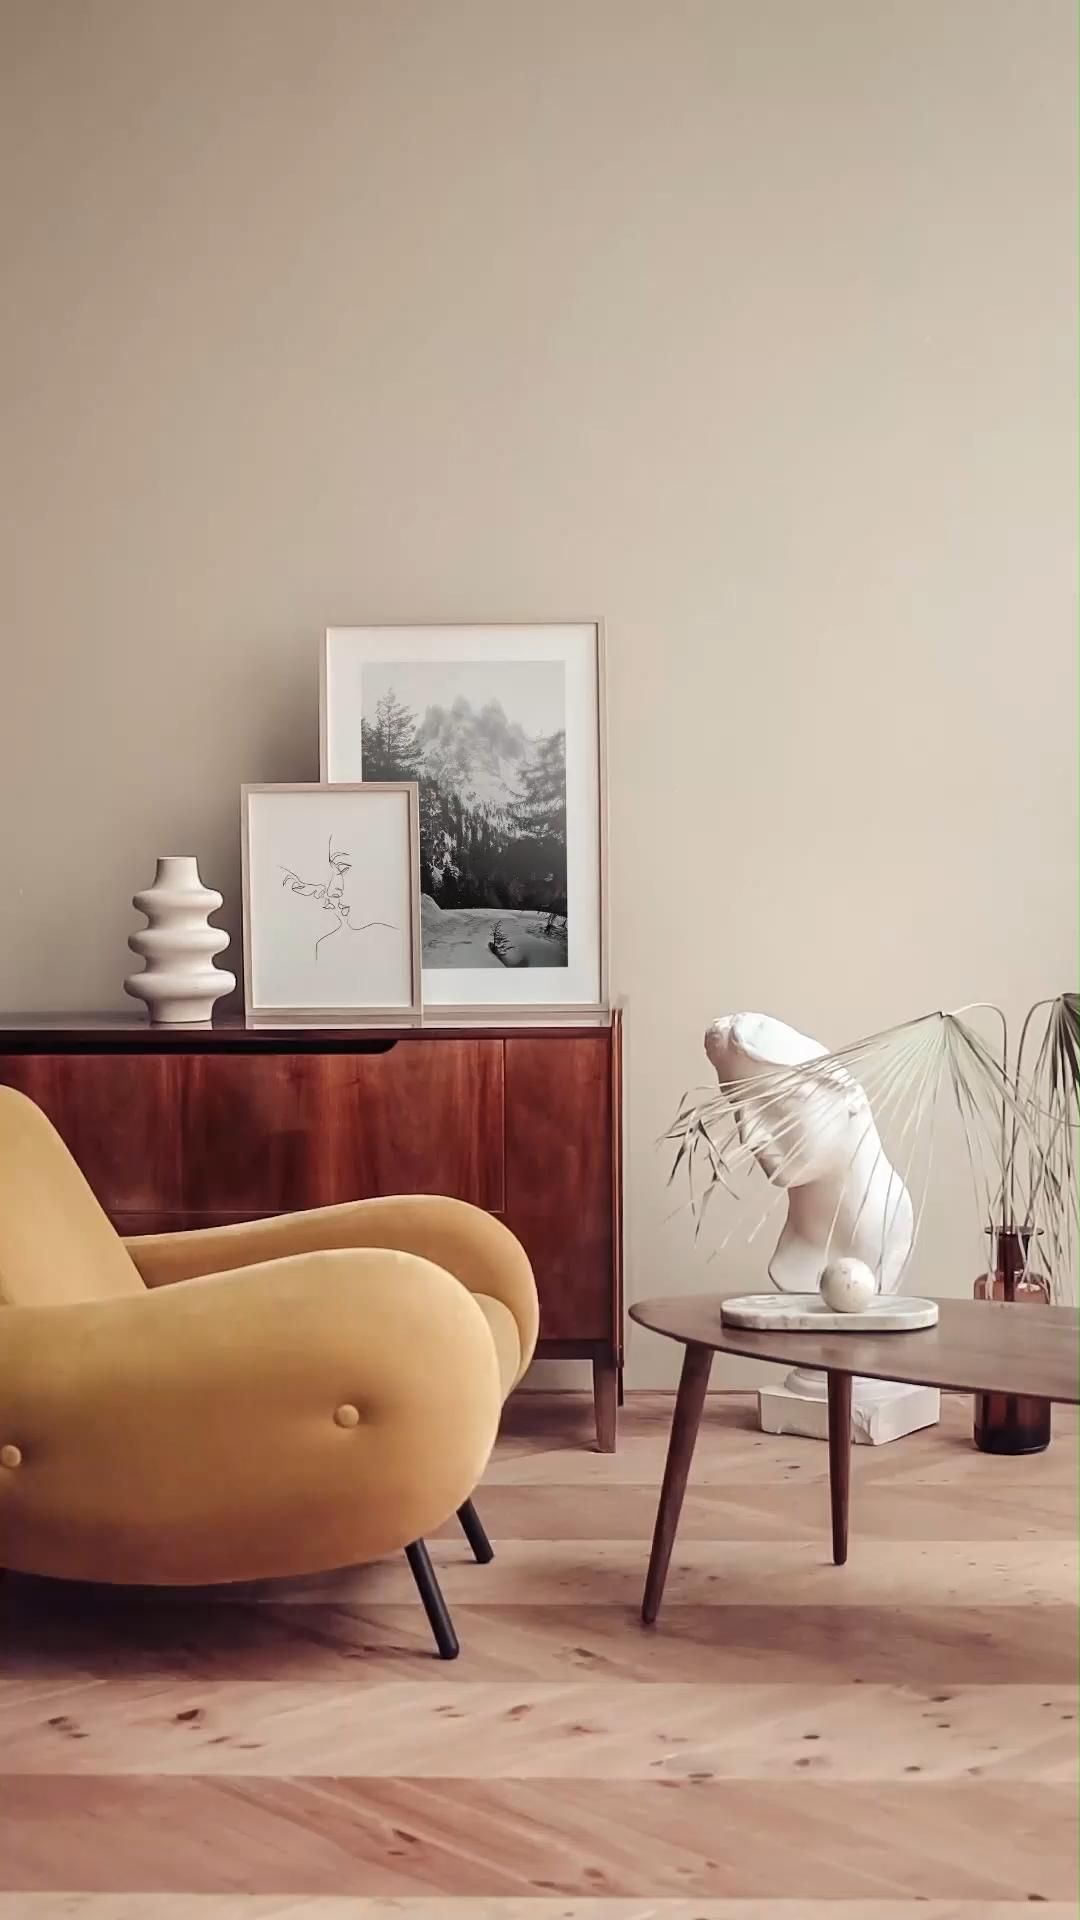 Art Prints and Posters to Add the Perfect Accent t